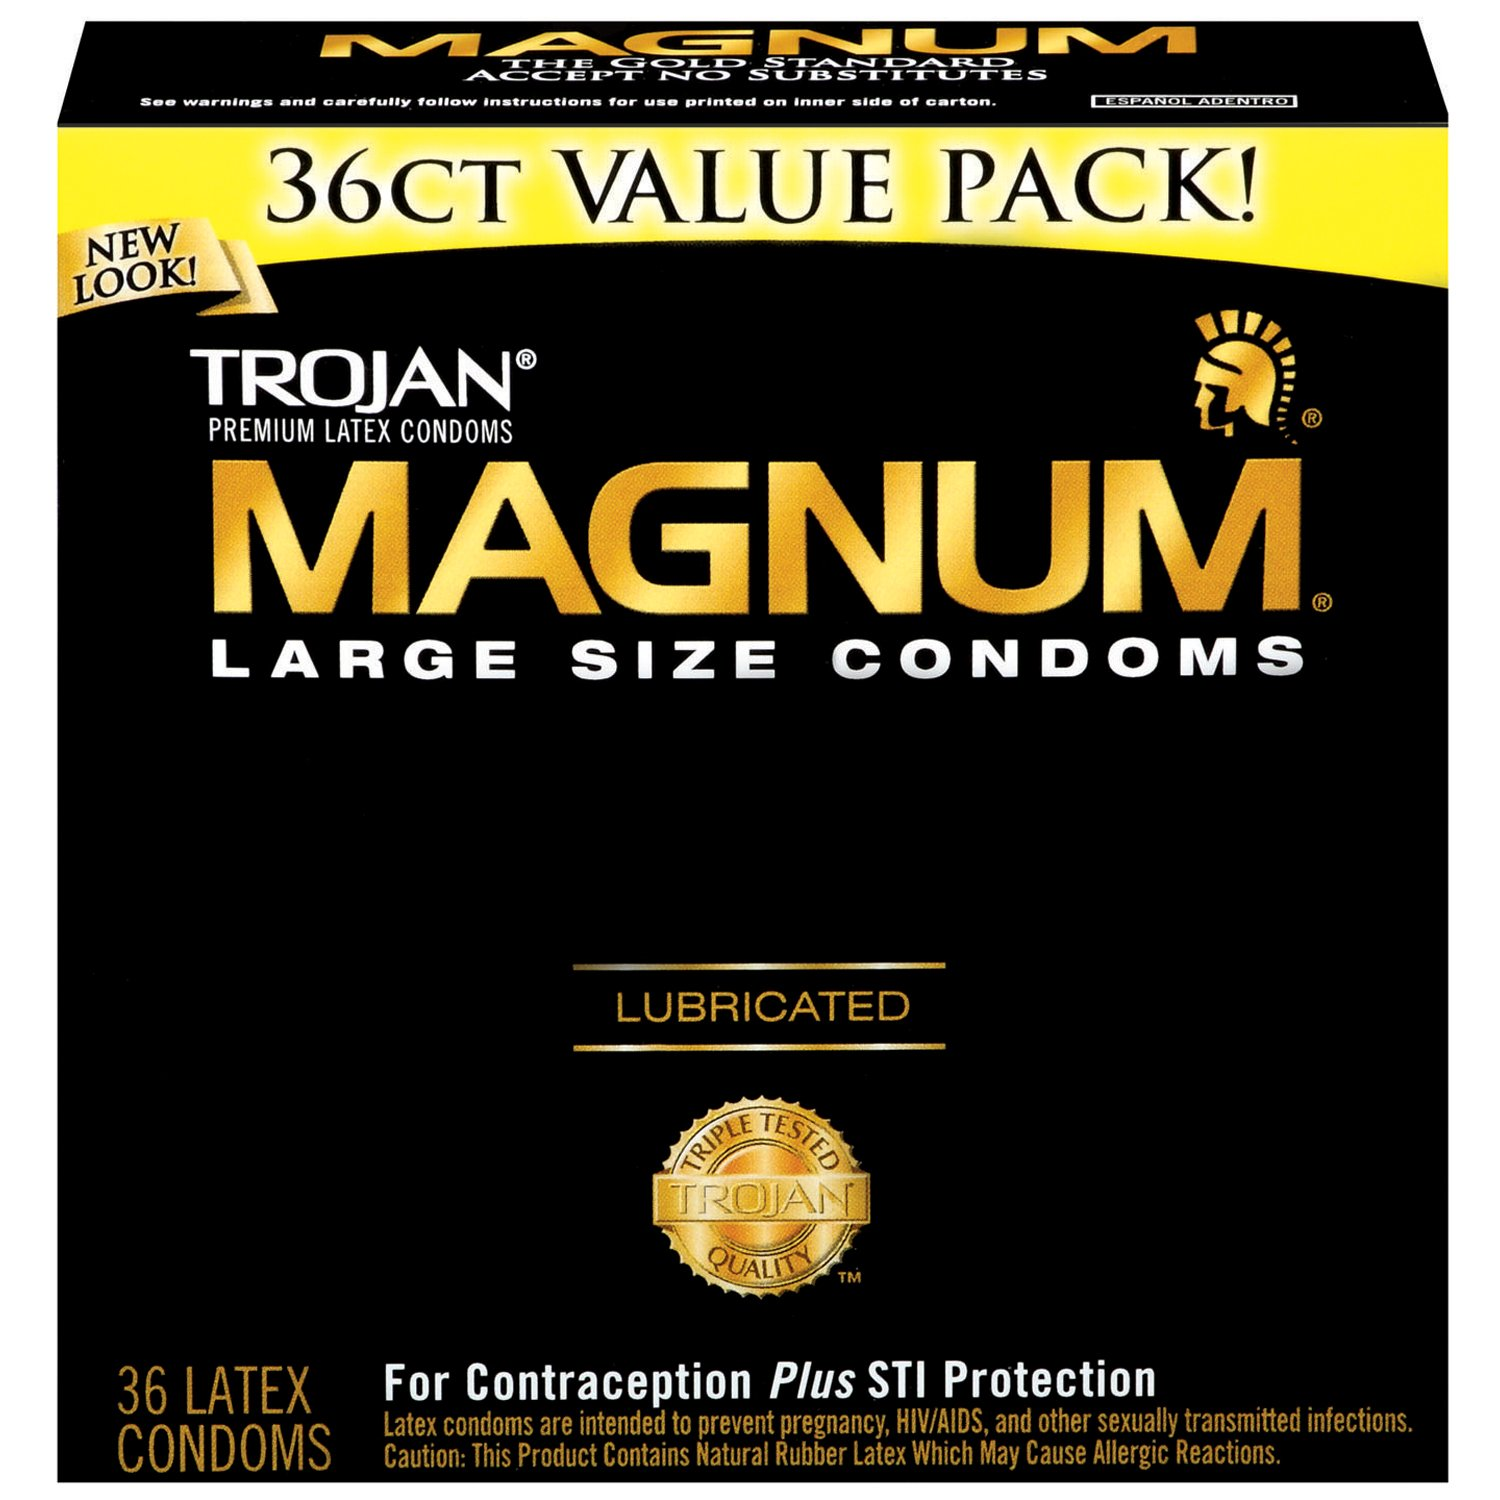 What are magnum condoms